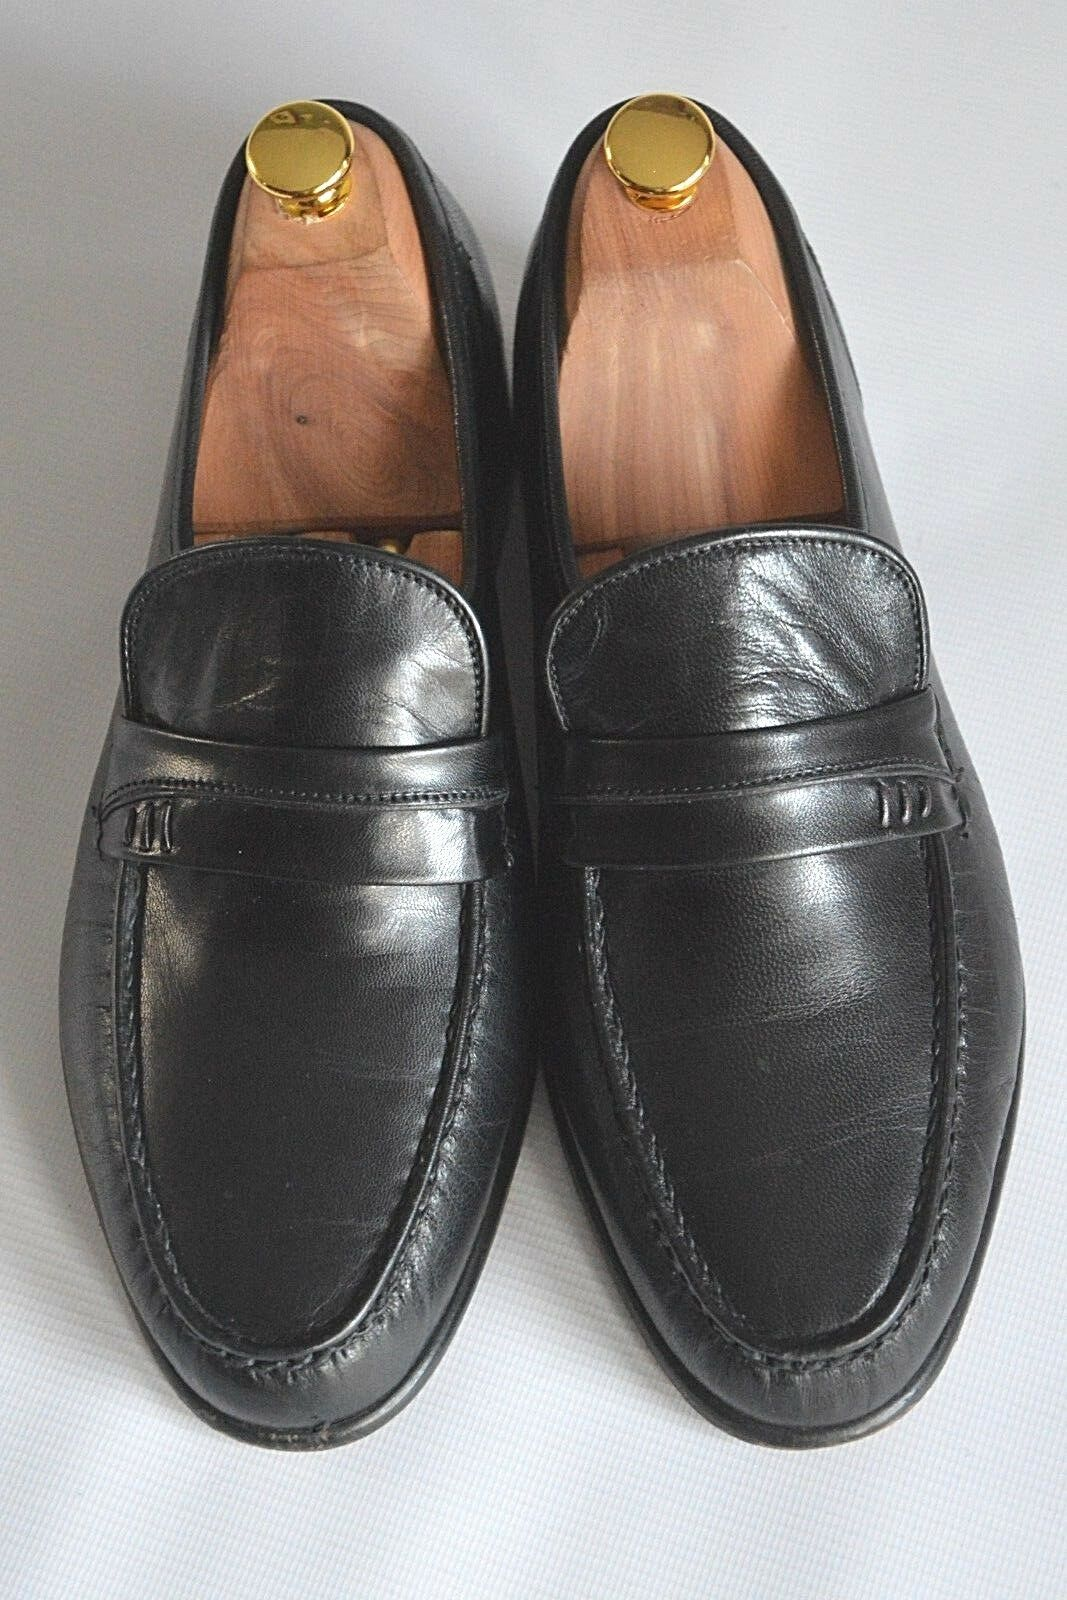 GRENSON FEATHERMASTER ARIZONA 9654 BLACK LEATHER MOCCASINS - UK 7  EUR 41  USA 8